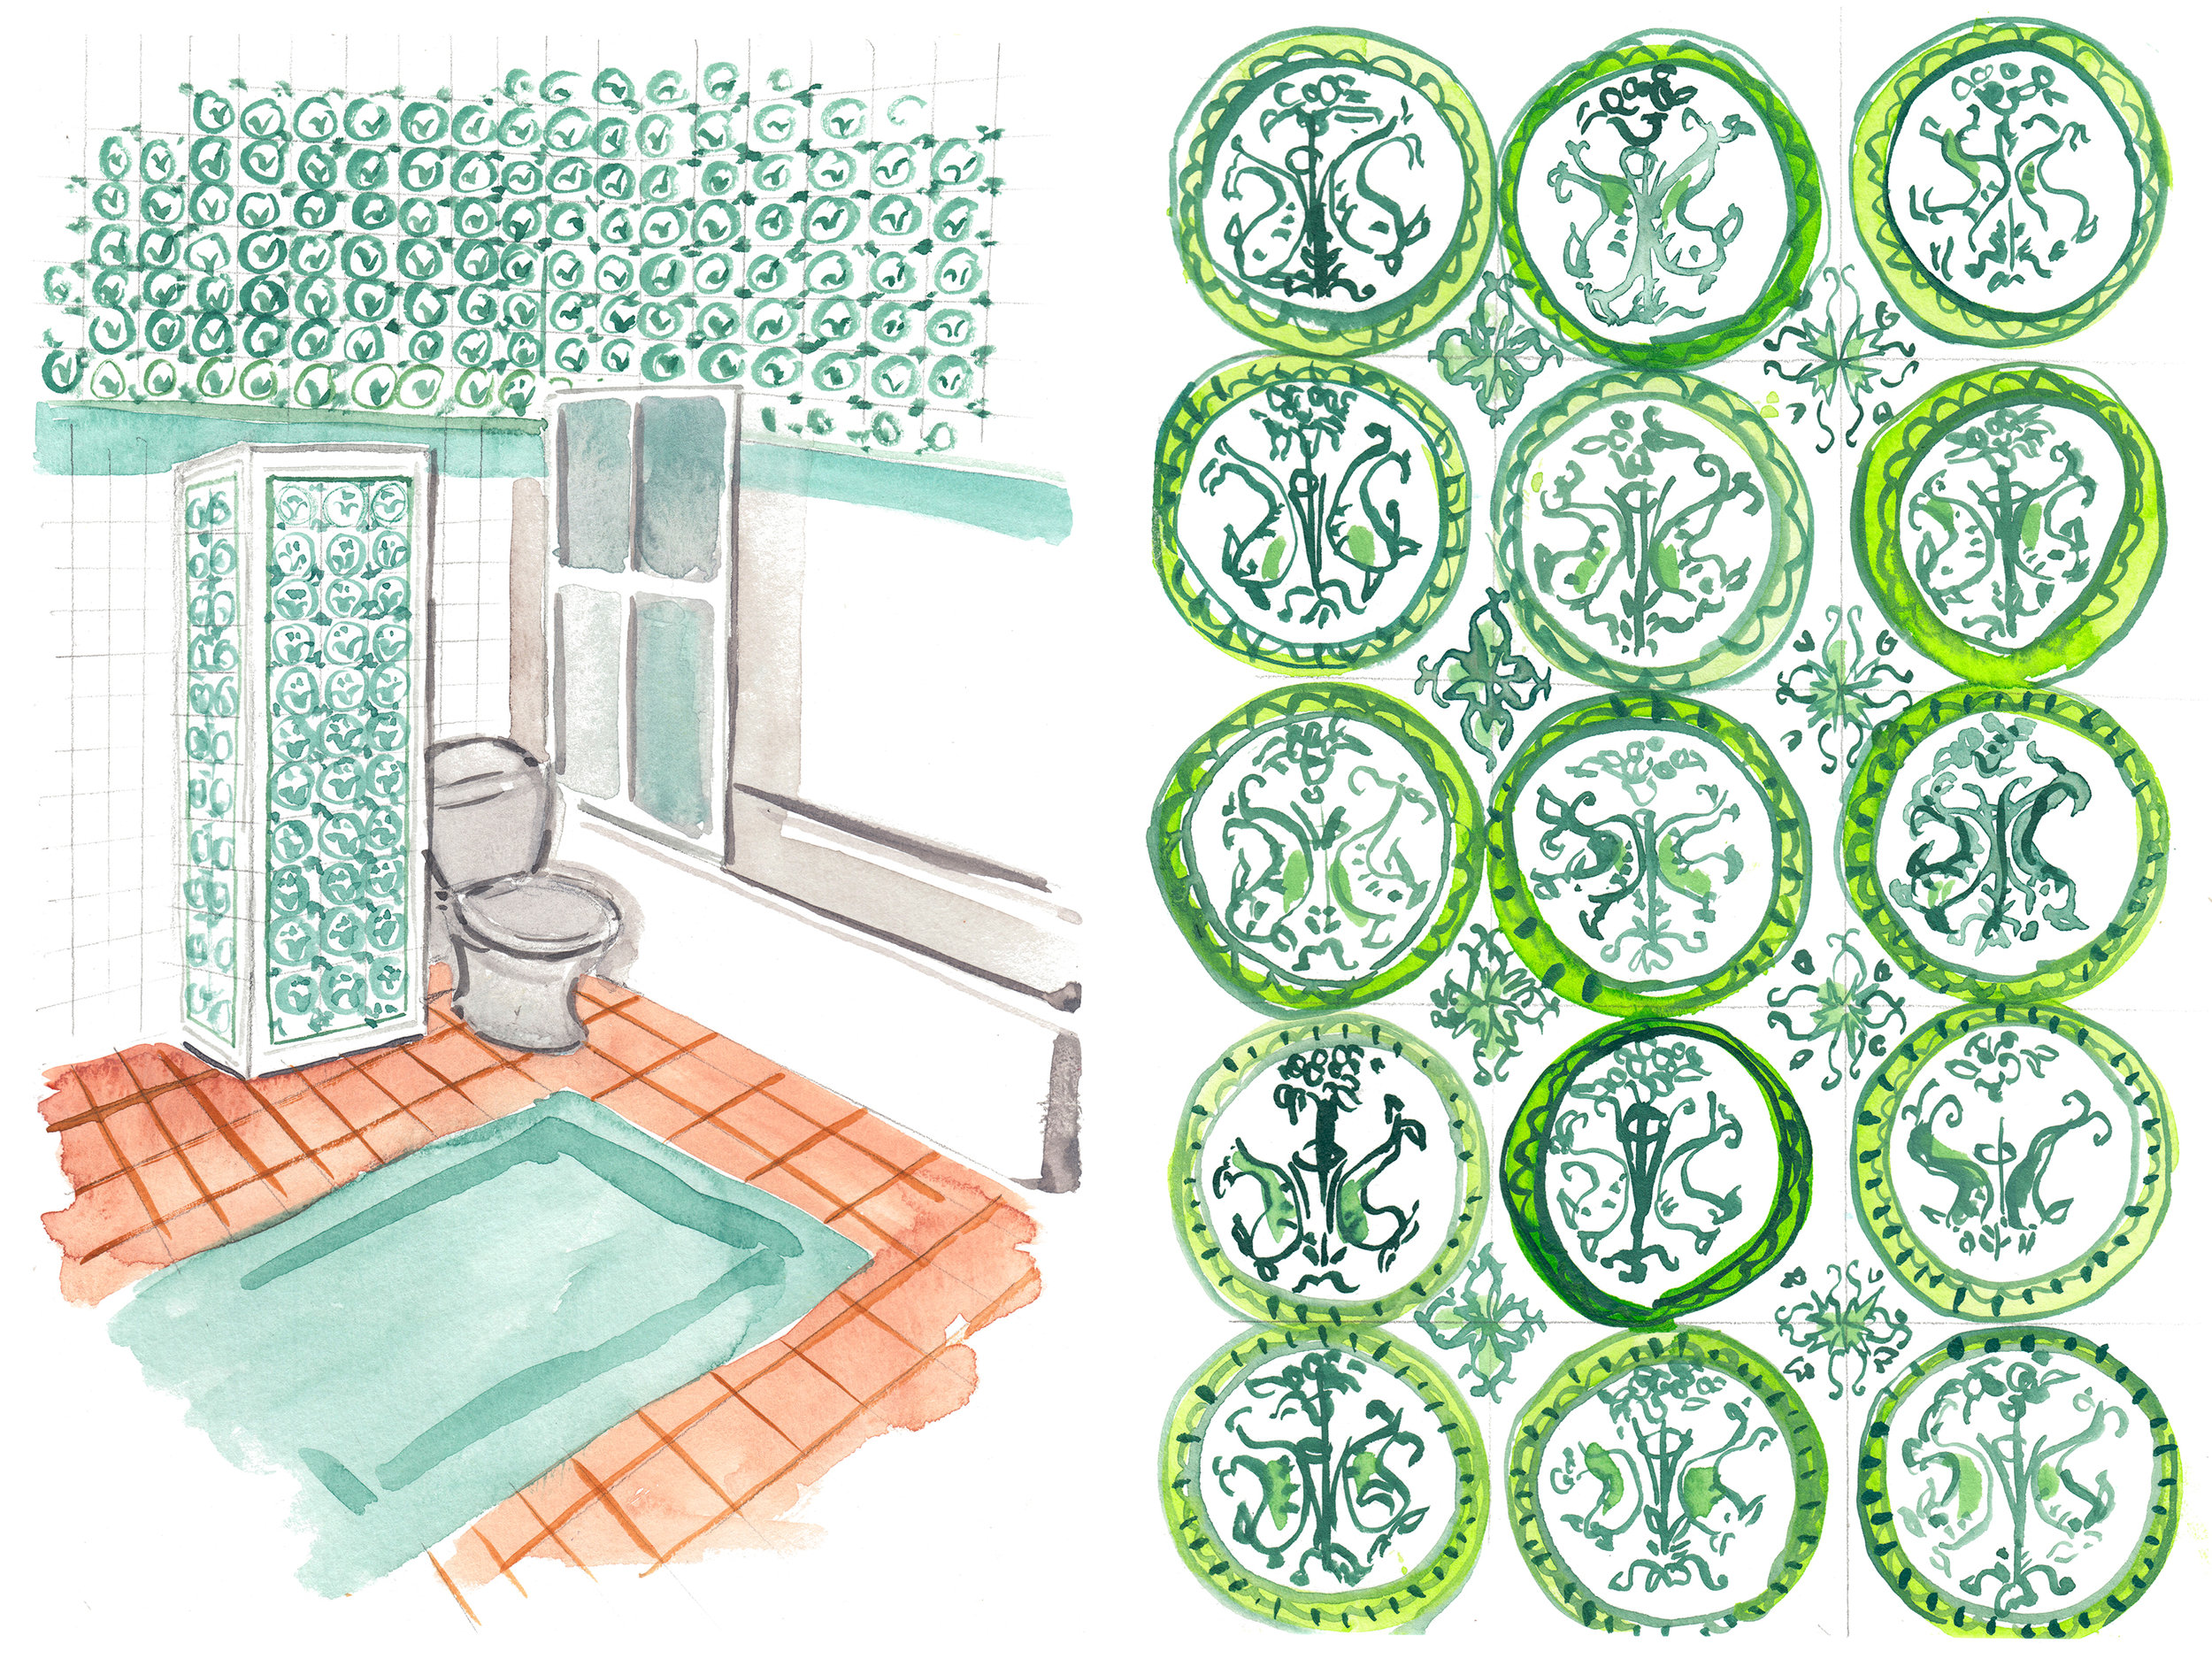 The bathroom by Madeleine Castaing.